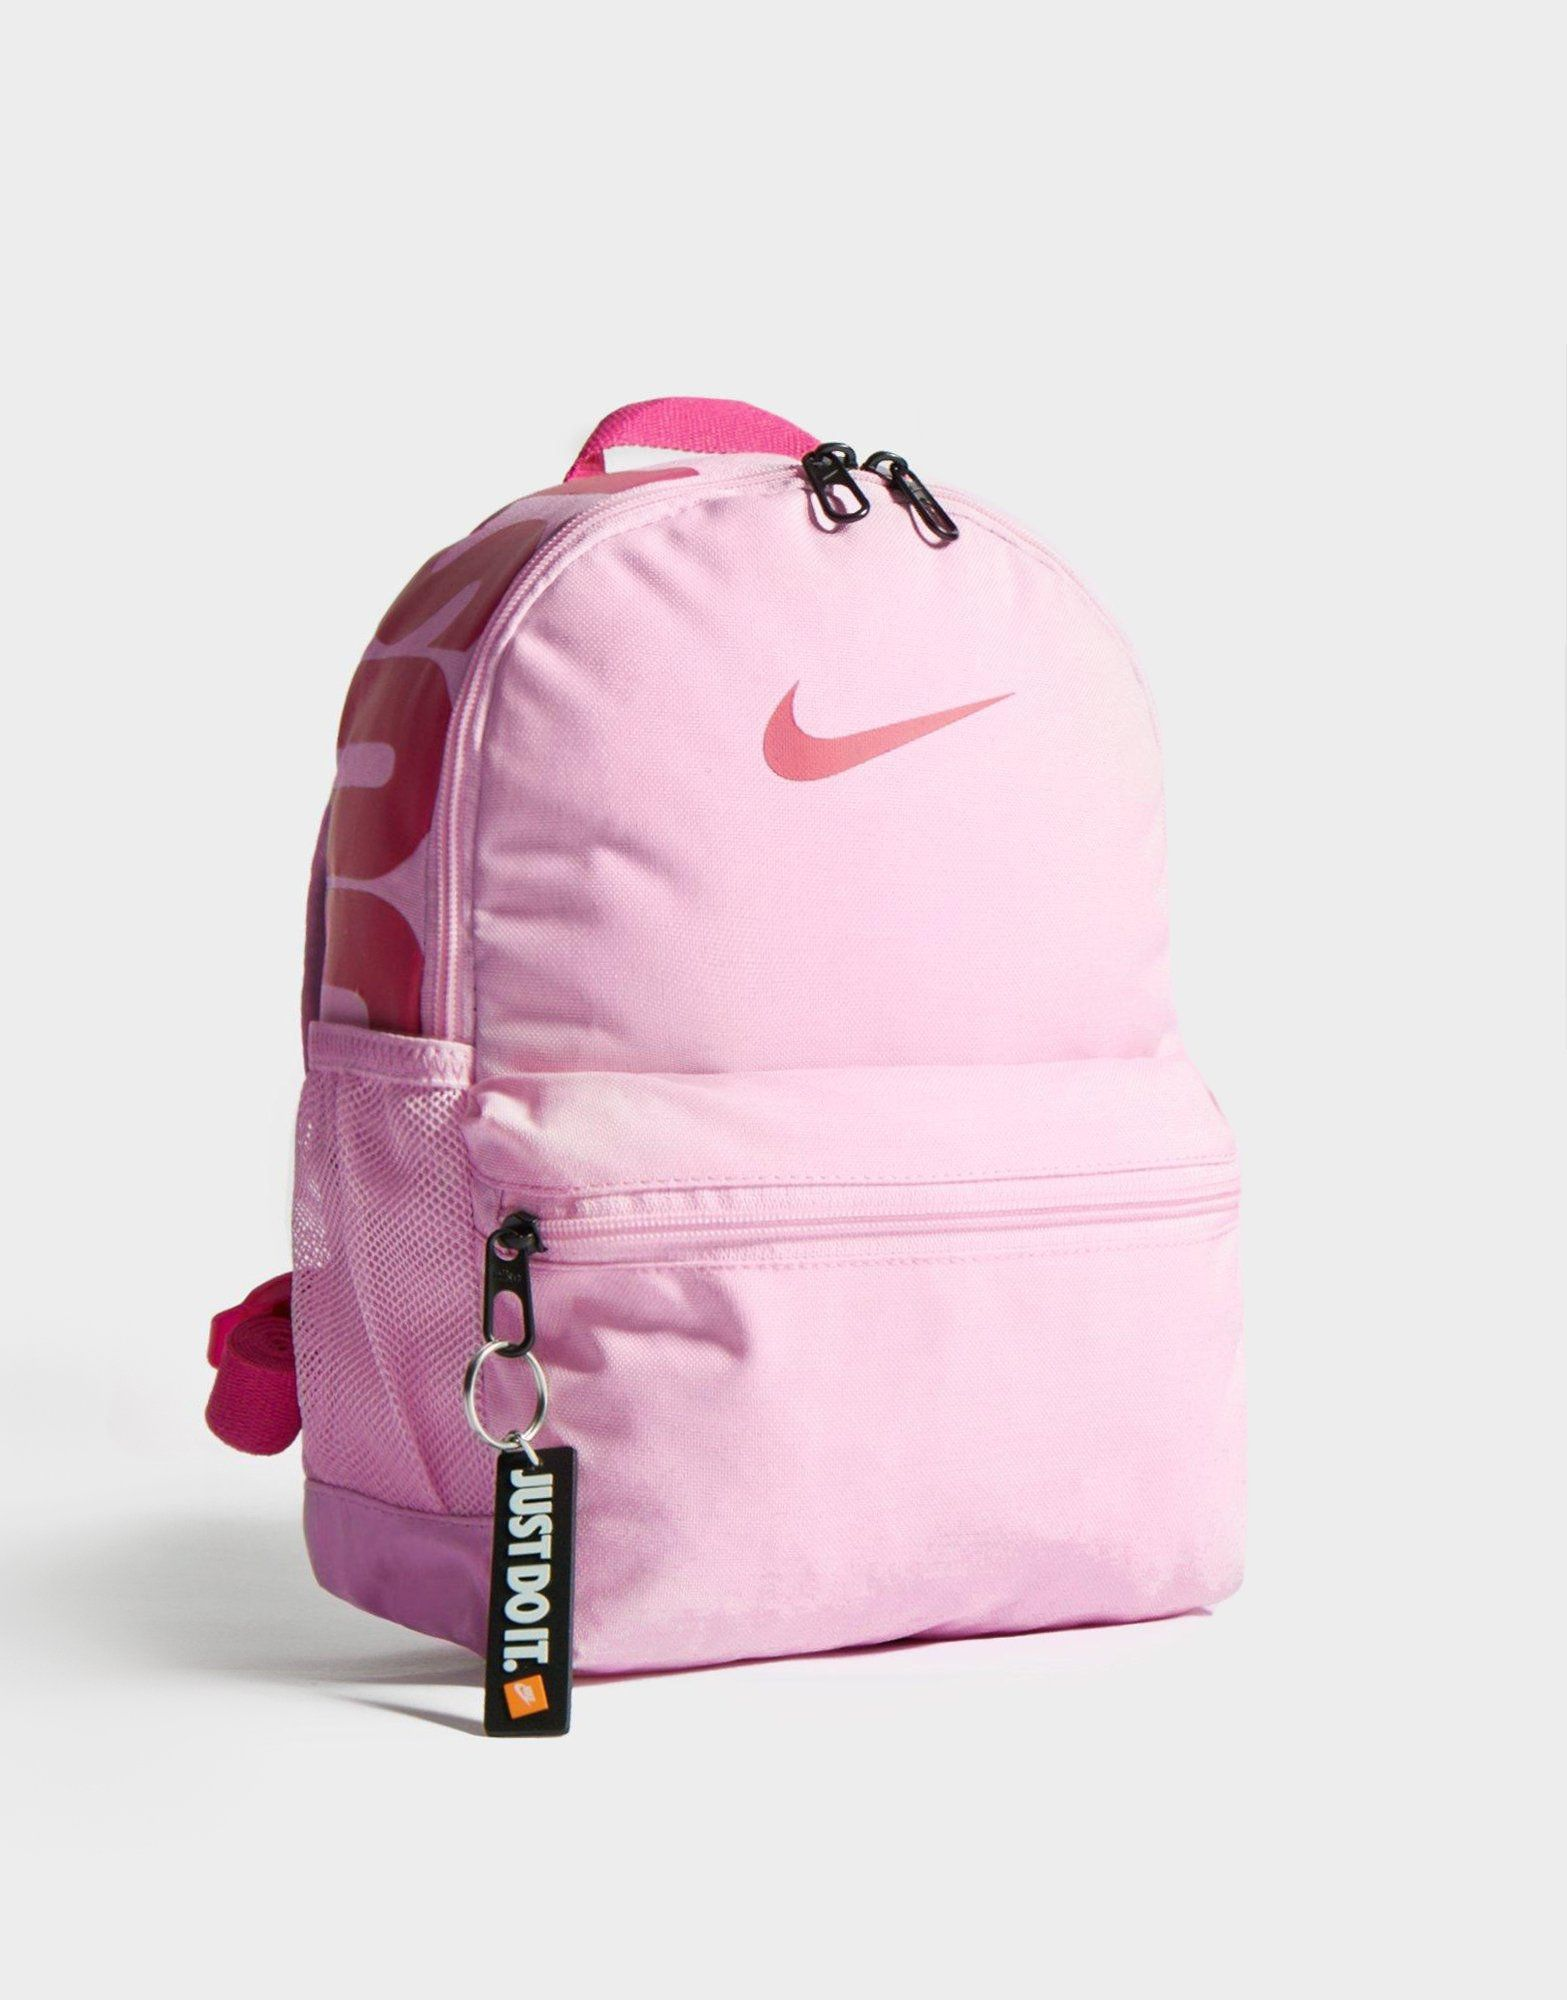 Nike Sac à Dos Mini Just Do It